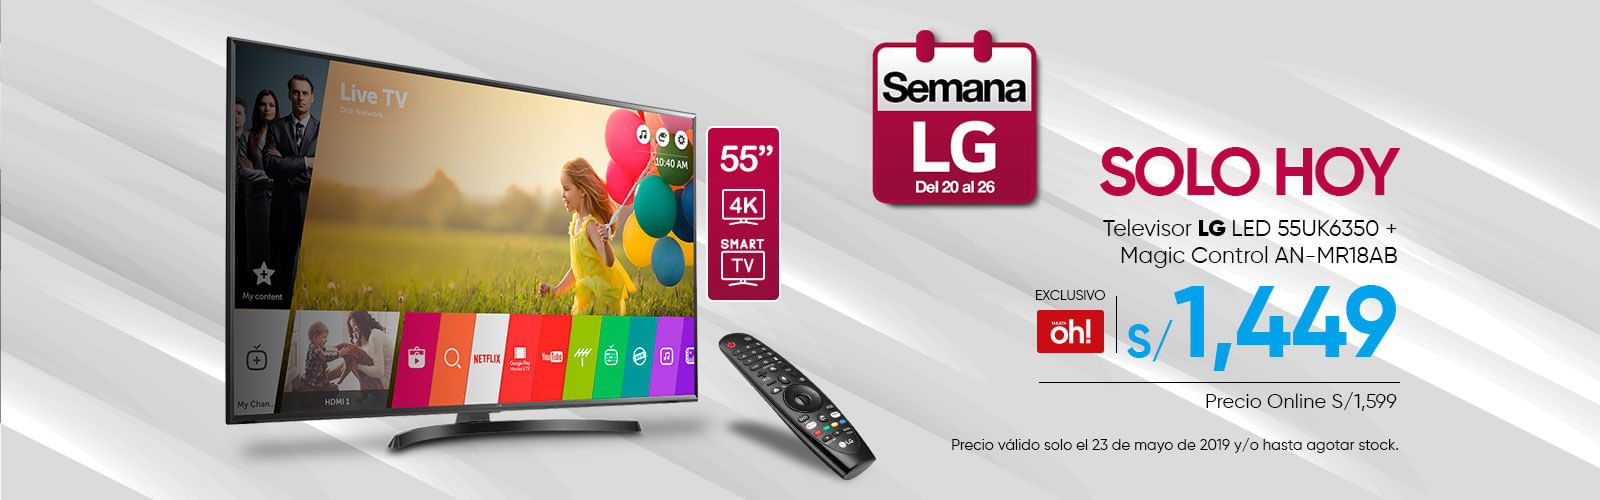 Televidor LG LED 55UK6350